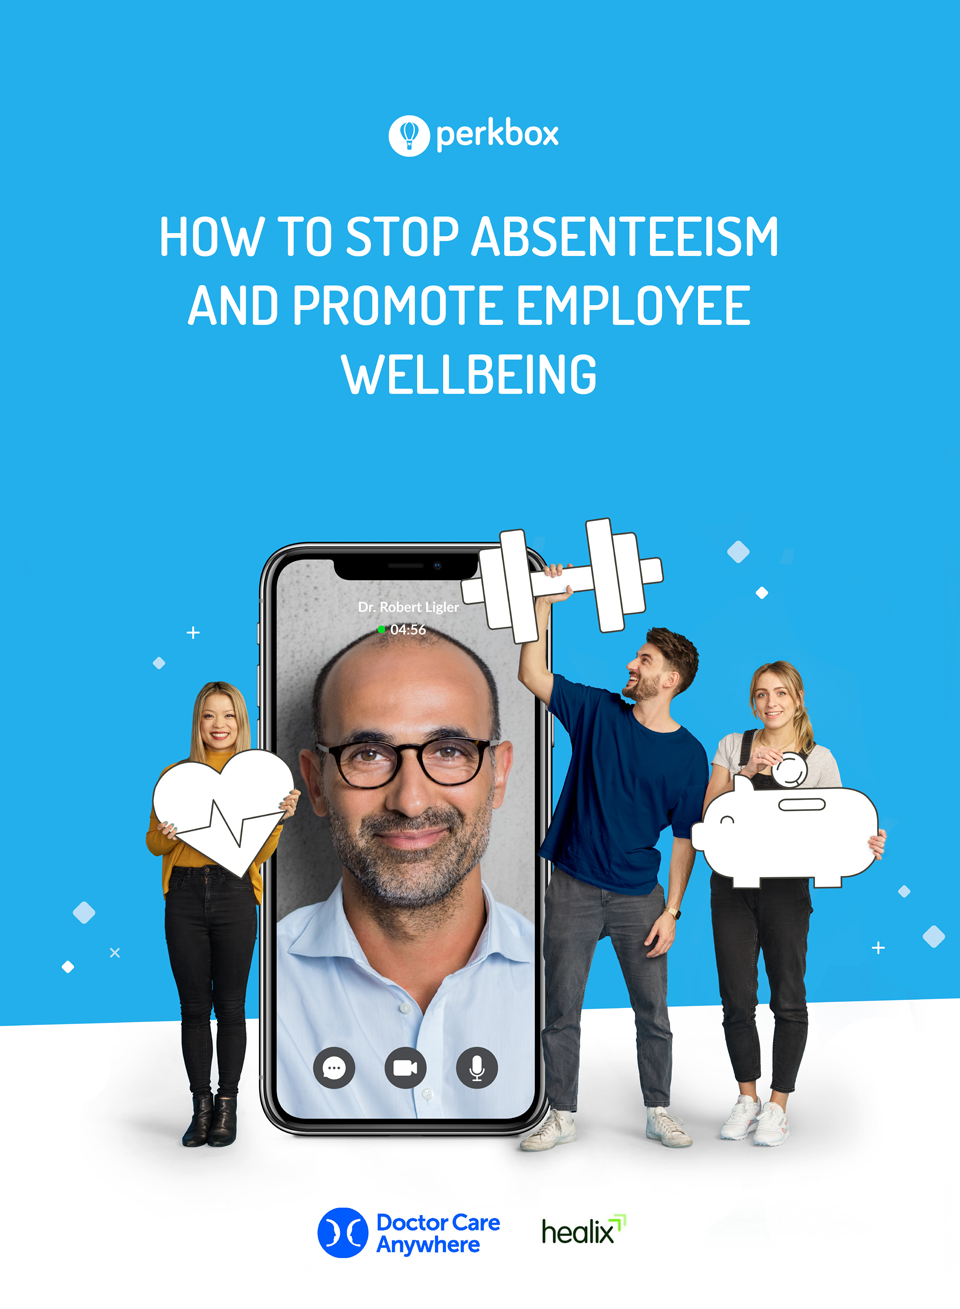 How to stop absenteeism and promote employee wellbeing